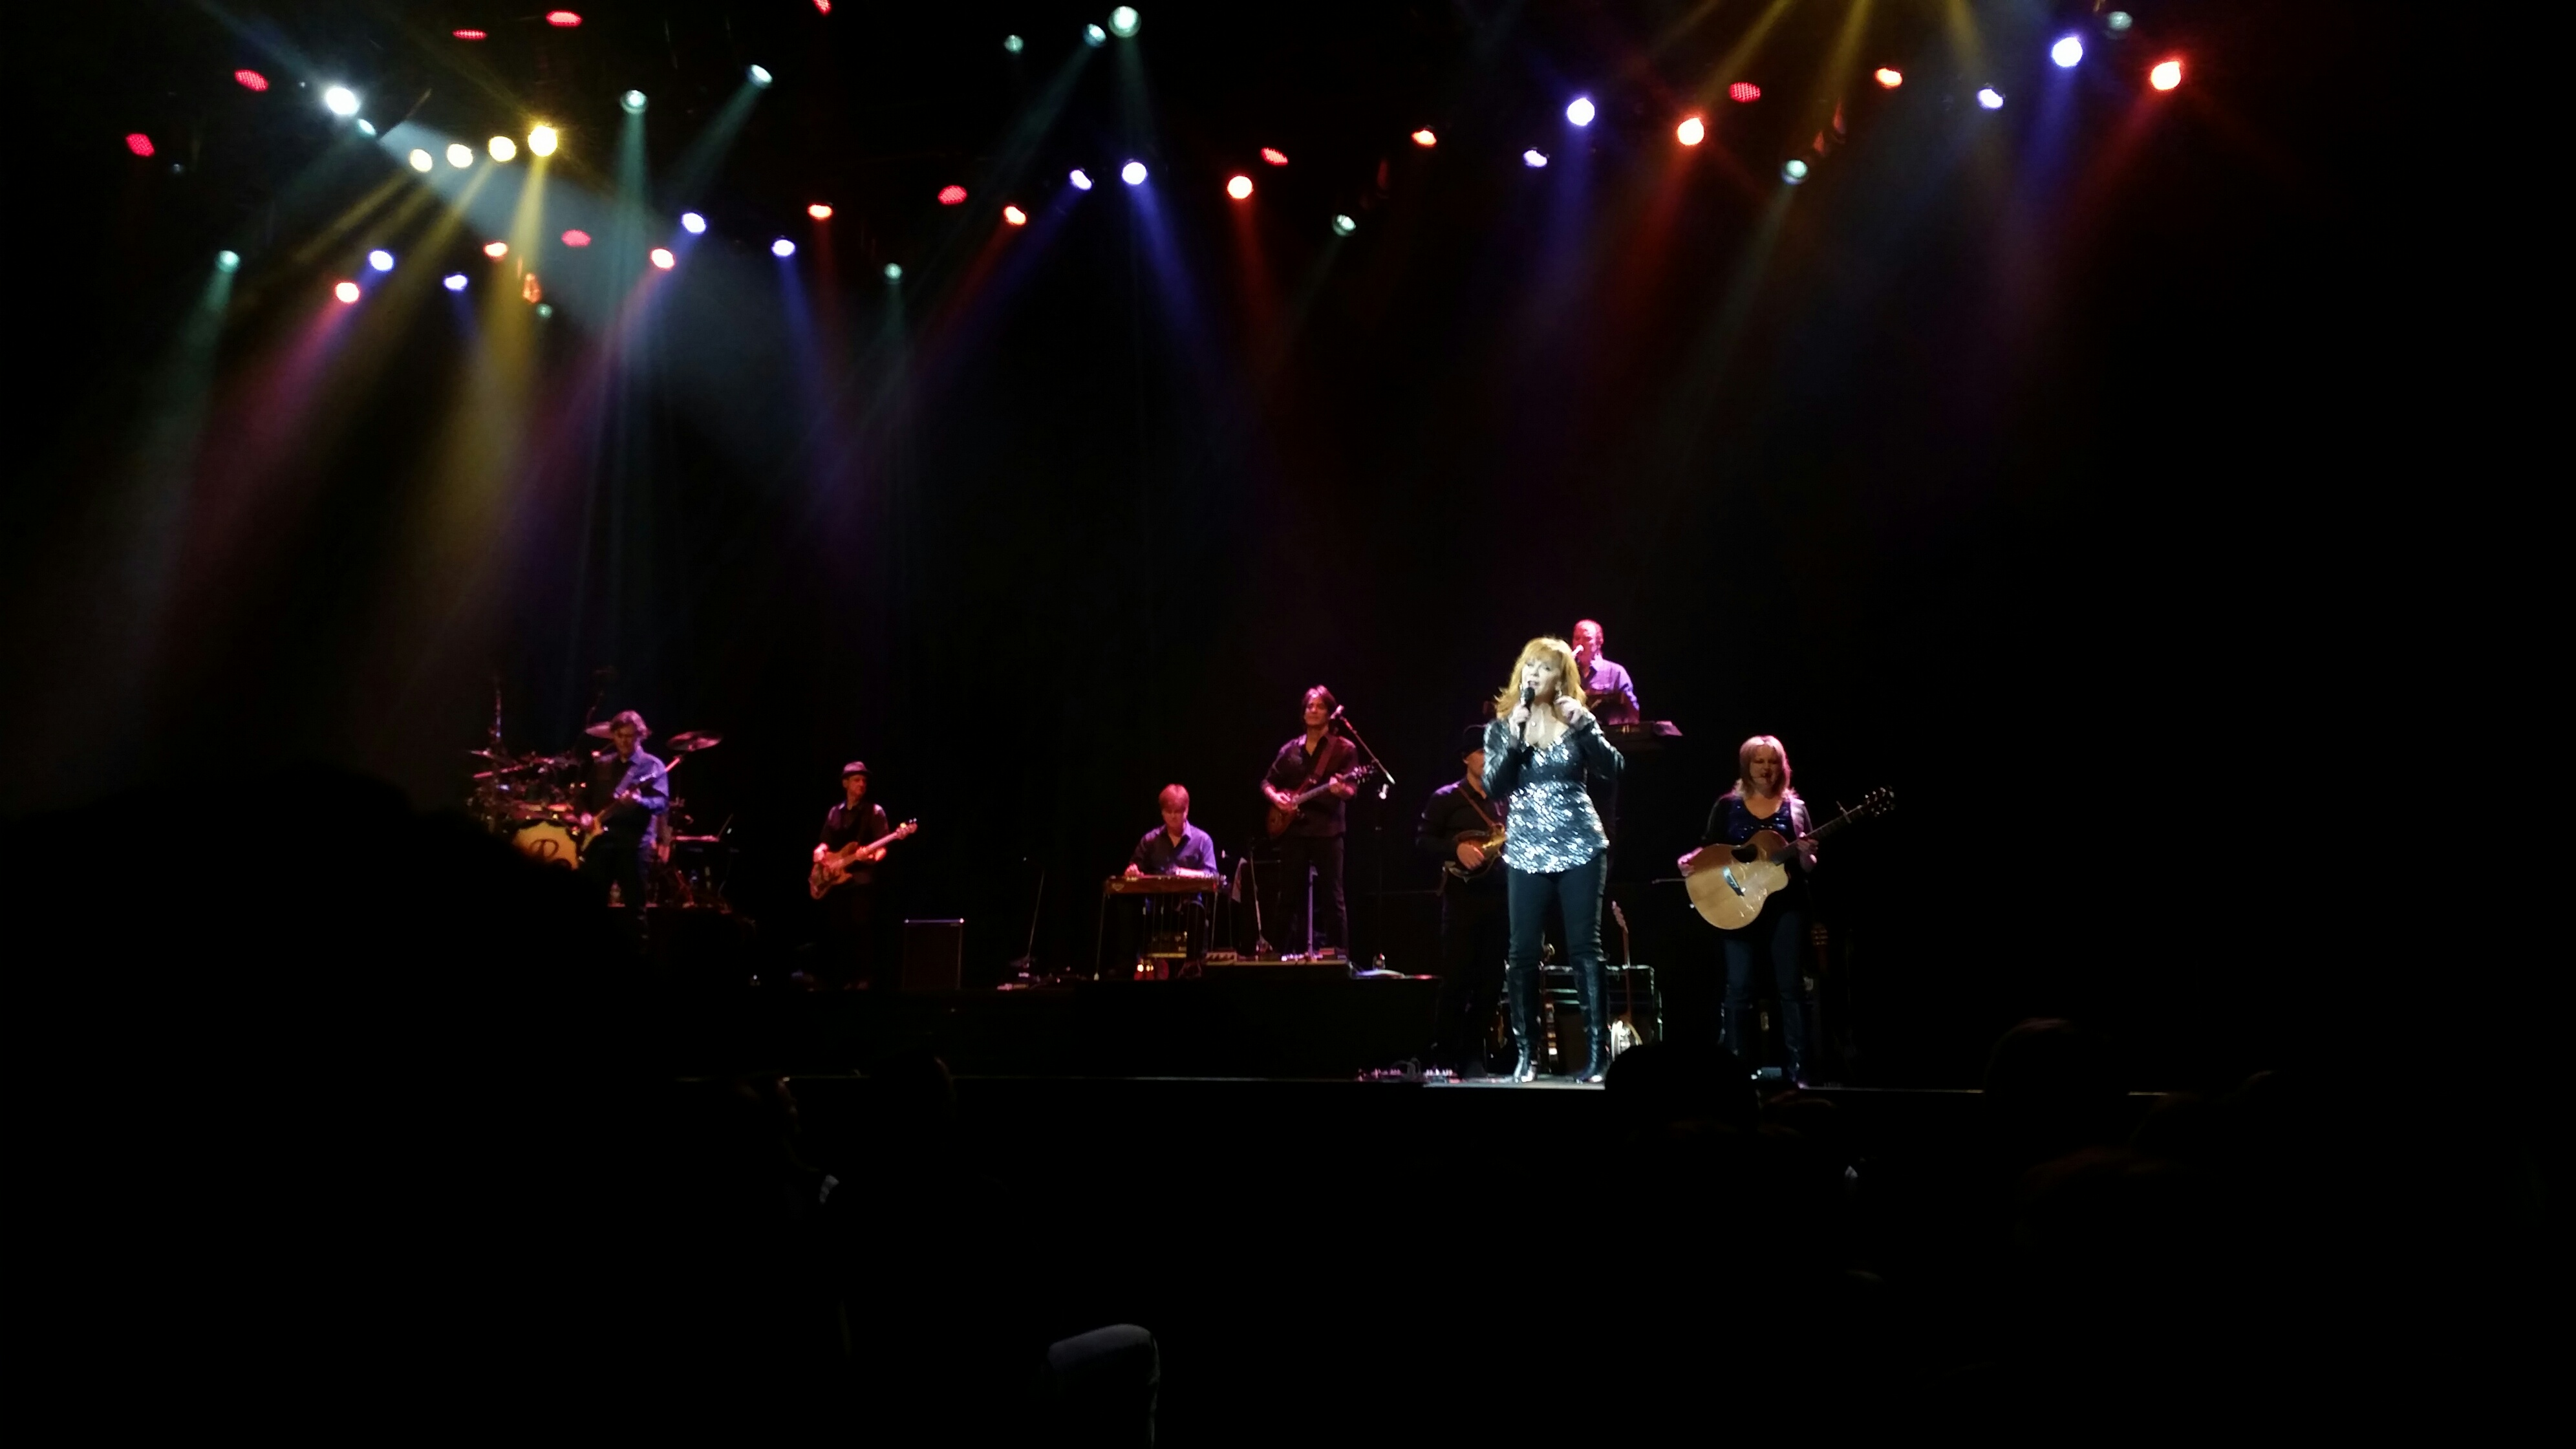 Reba - Fallsview Casino - March 24, 2015 Photo by: Corey Kelly for Sound Check